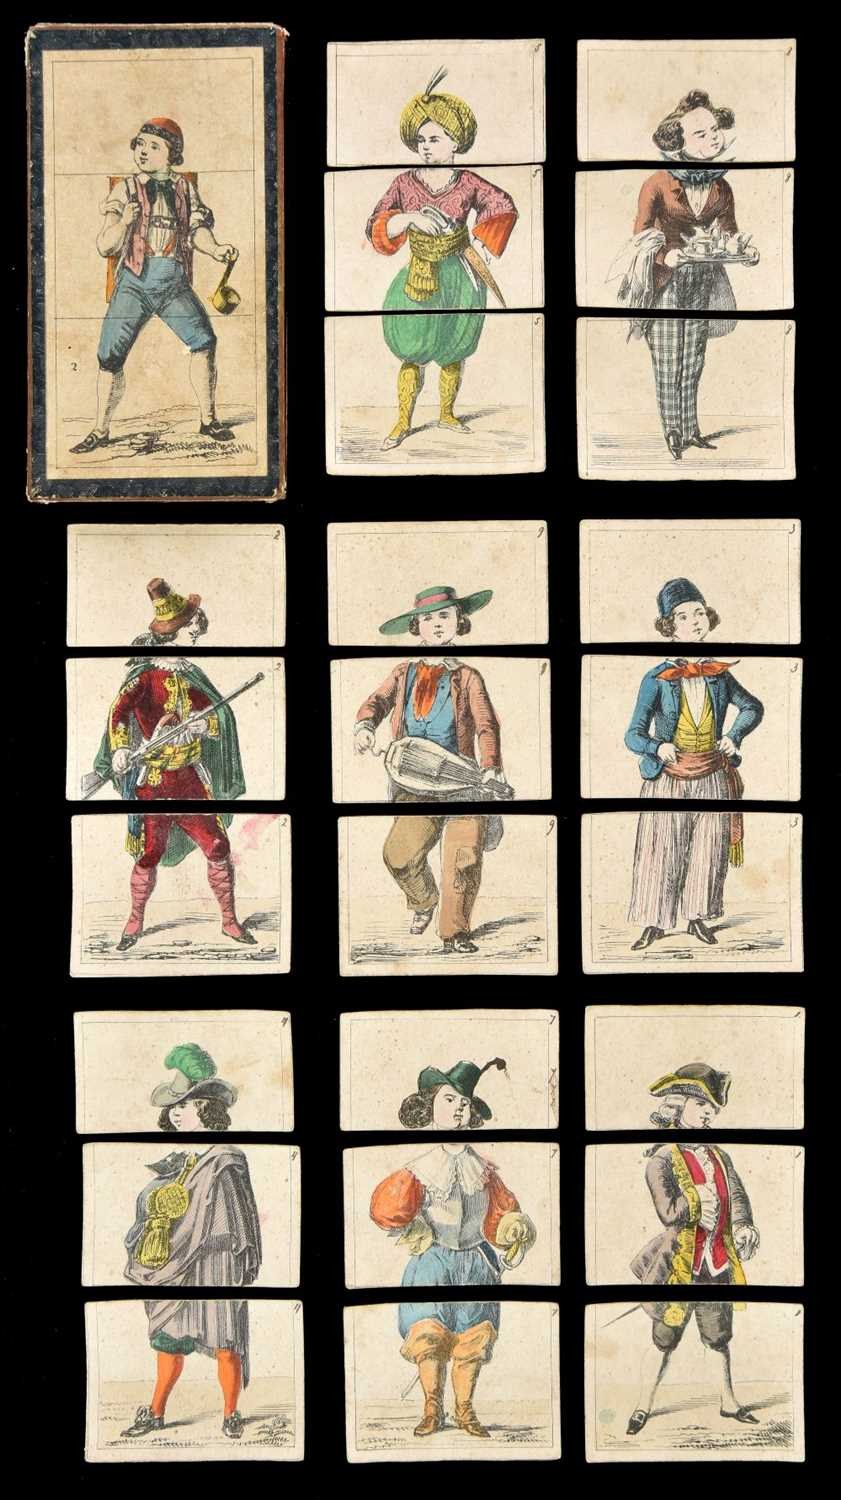 Lot 525-Transformation Game. Metamorphosis costume cards, circa 1840s